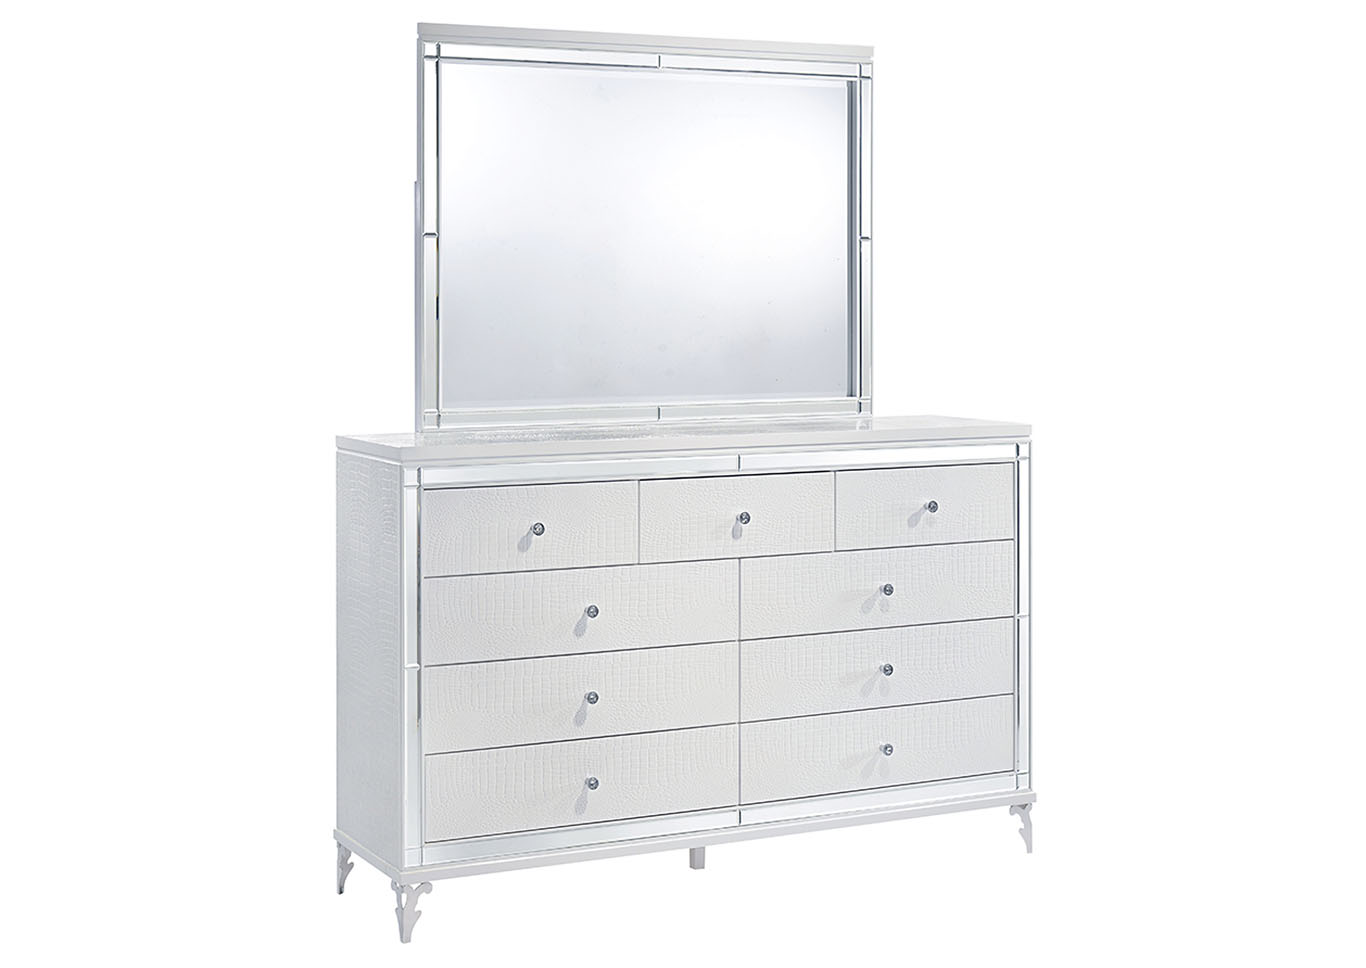 Catalina Metallic White Dresser and Mirror,Global Furniture USA